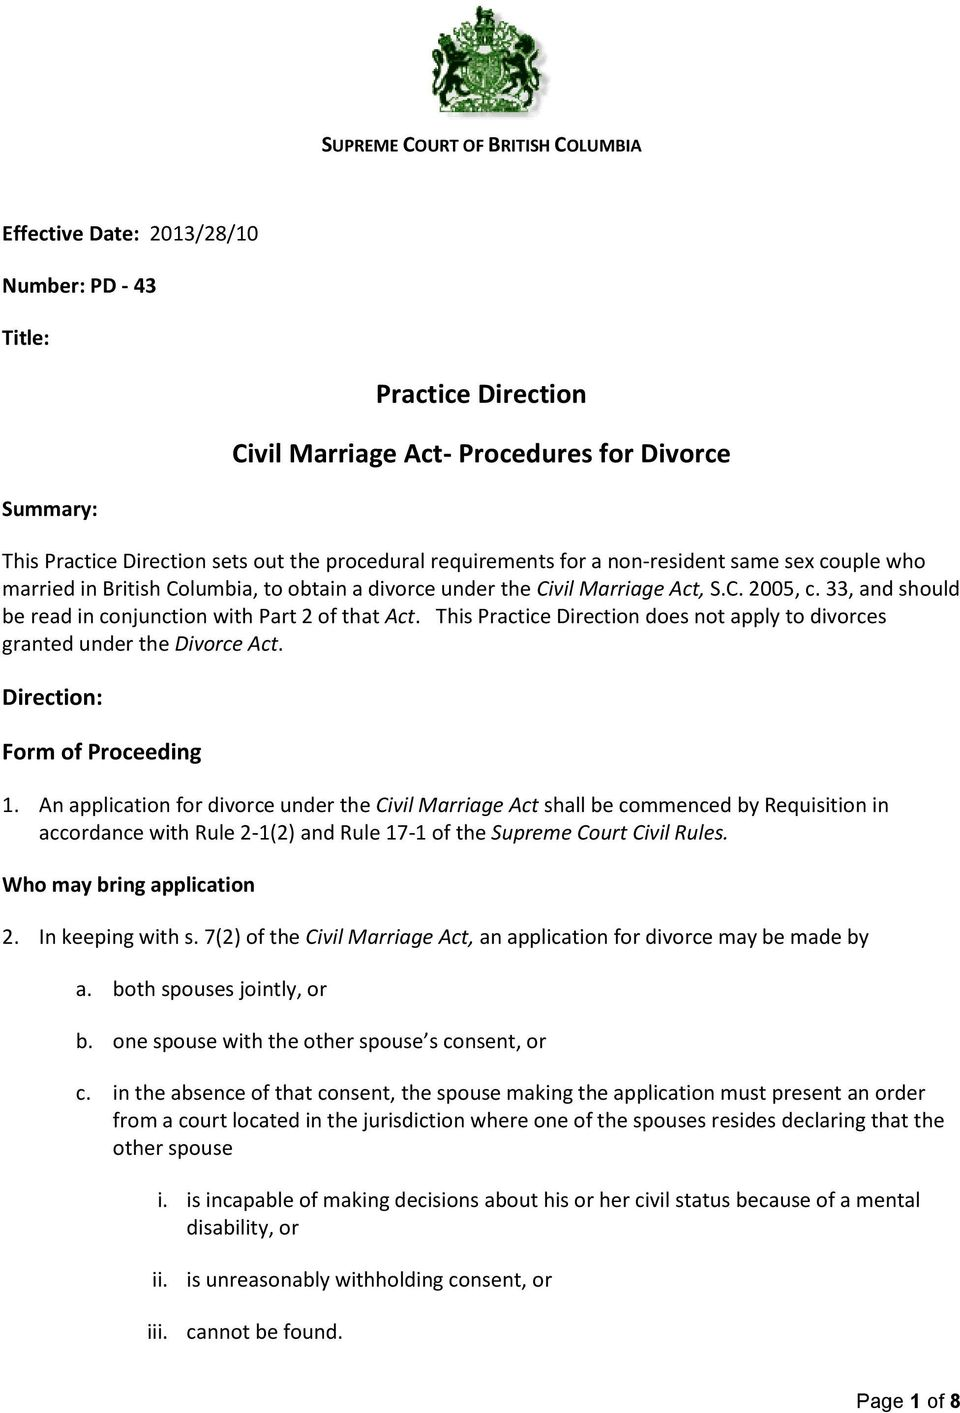 Nova Scotia Supreme Court Divorce Forms